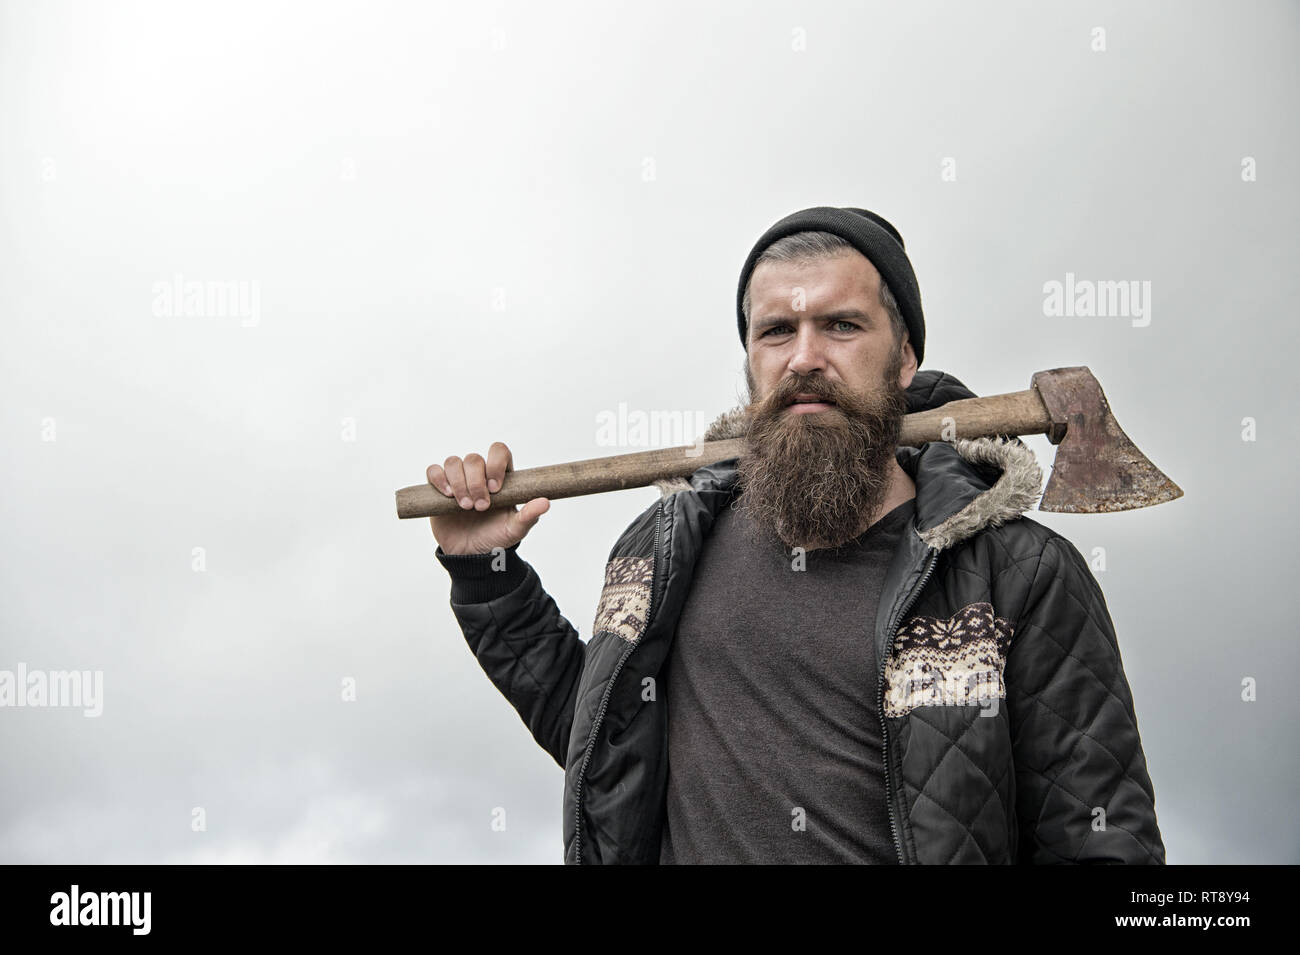 Handsome man hipster or guy with beard and moustache on serious face in hat and jacket holds rusty axe with wooden hilt outdoor against cloudy sky on natural background, copy space - Stock Image